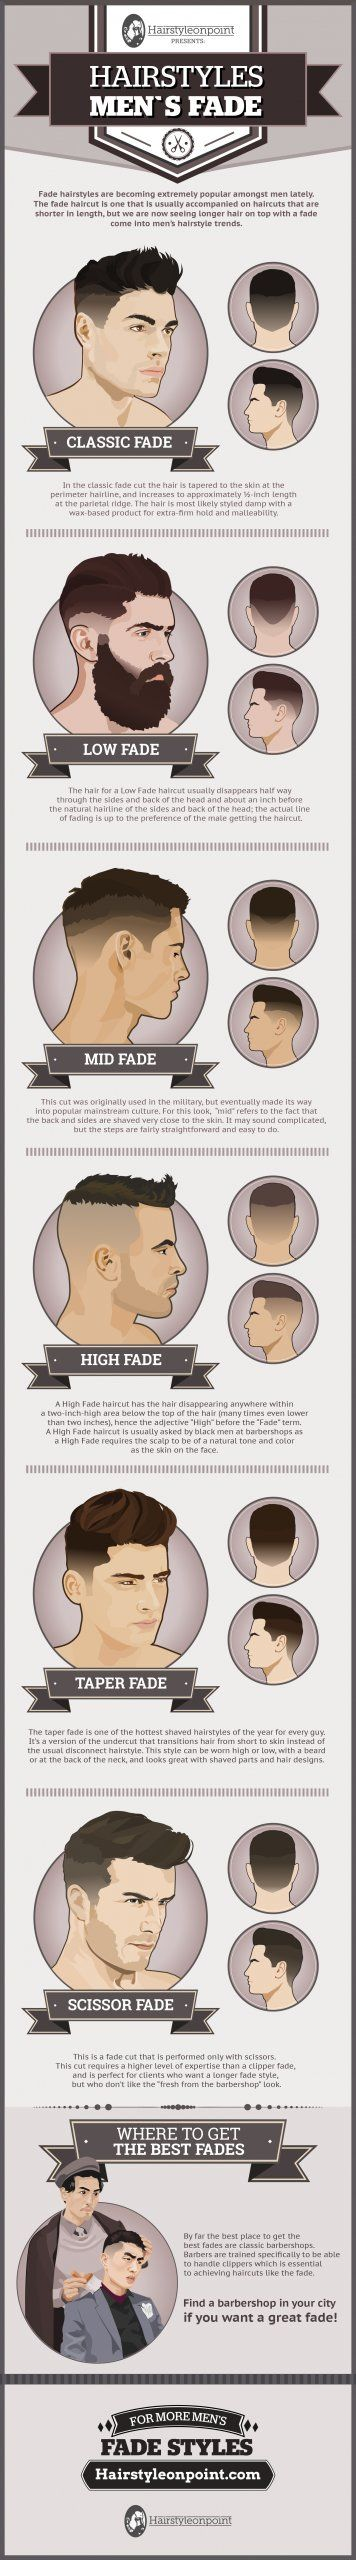 How to choose haircut men this is the trendiest haircut for guys right now  typography